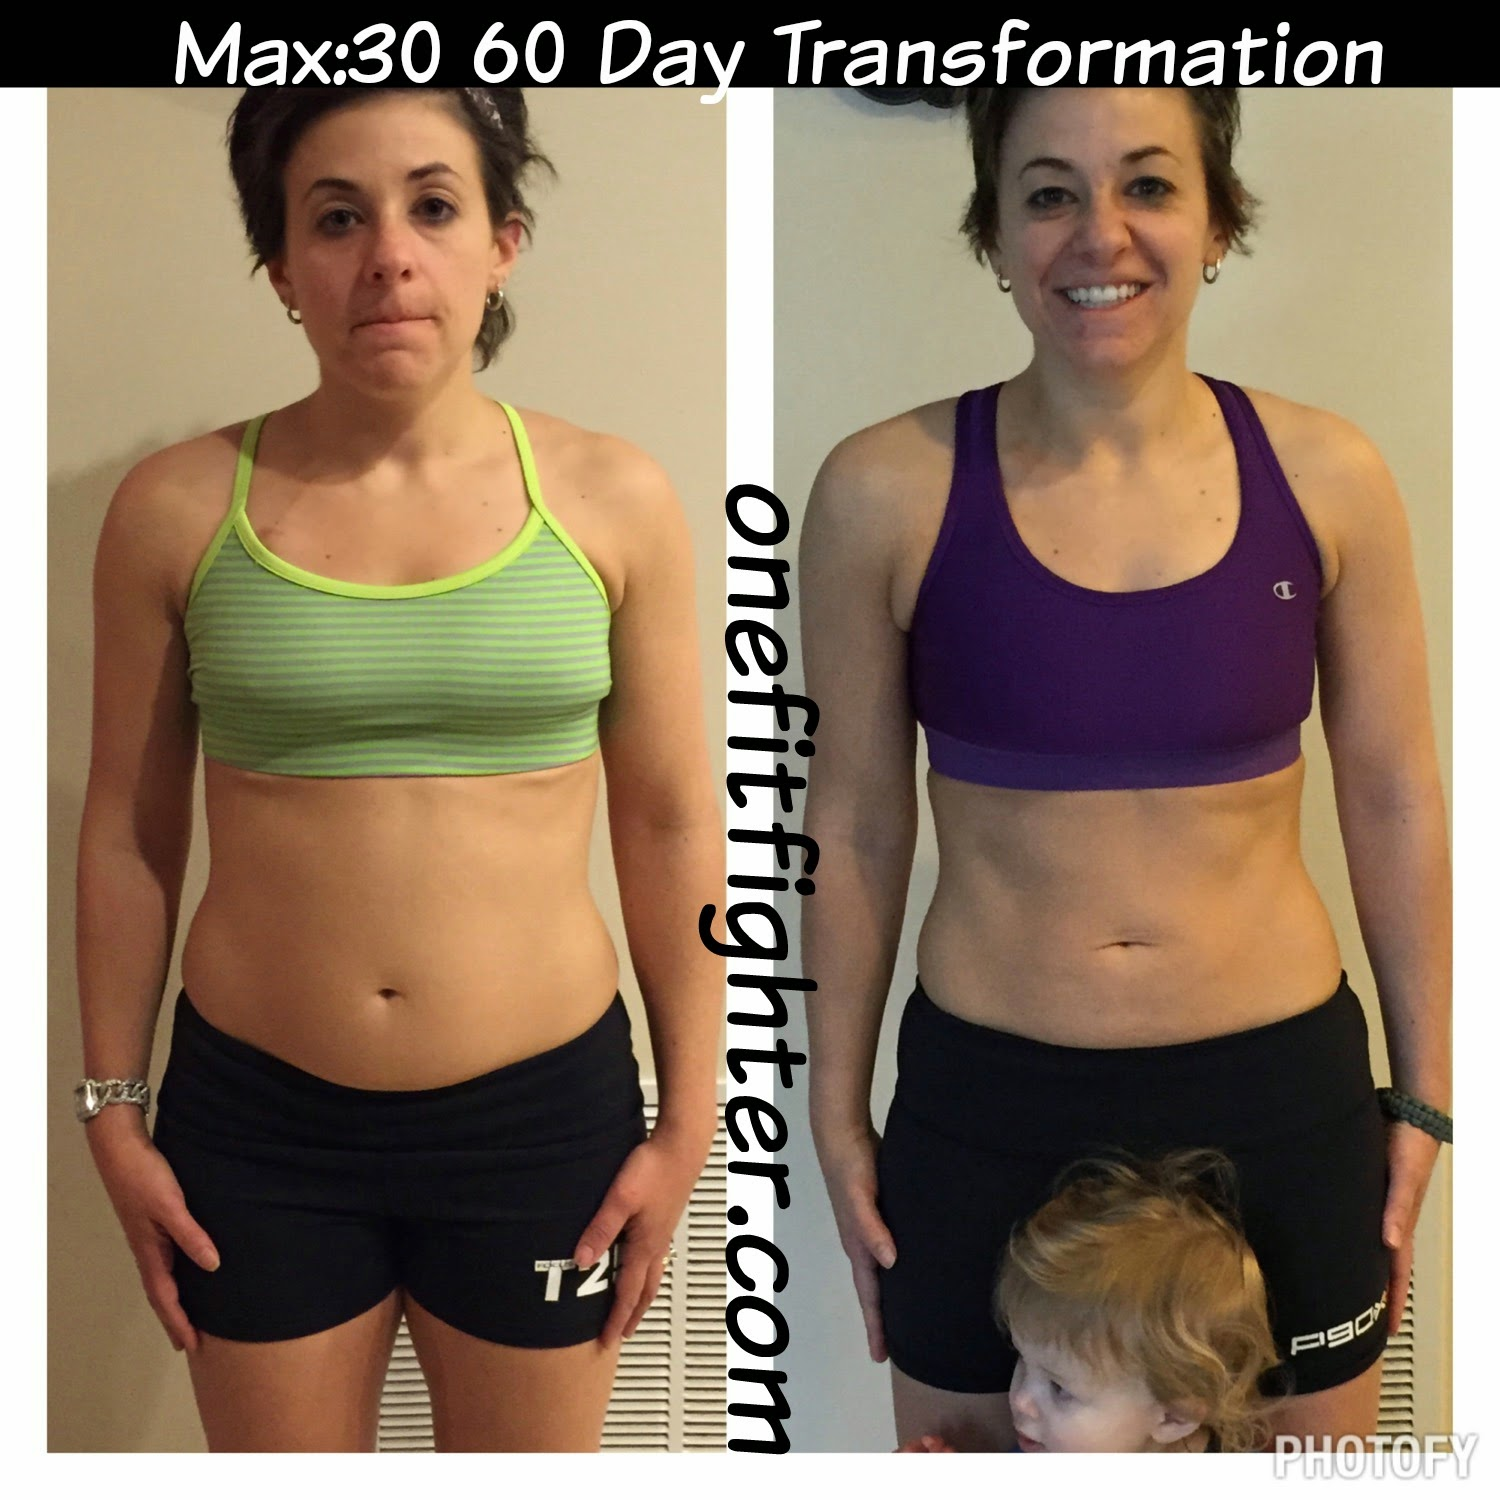 max30 transformation, max30 female transformation, max30 does it work